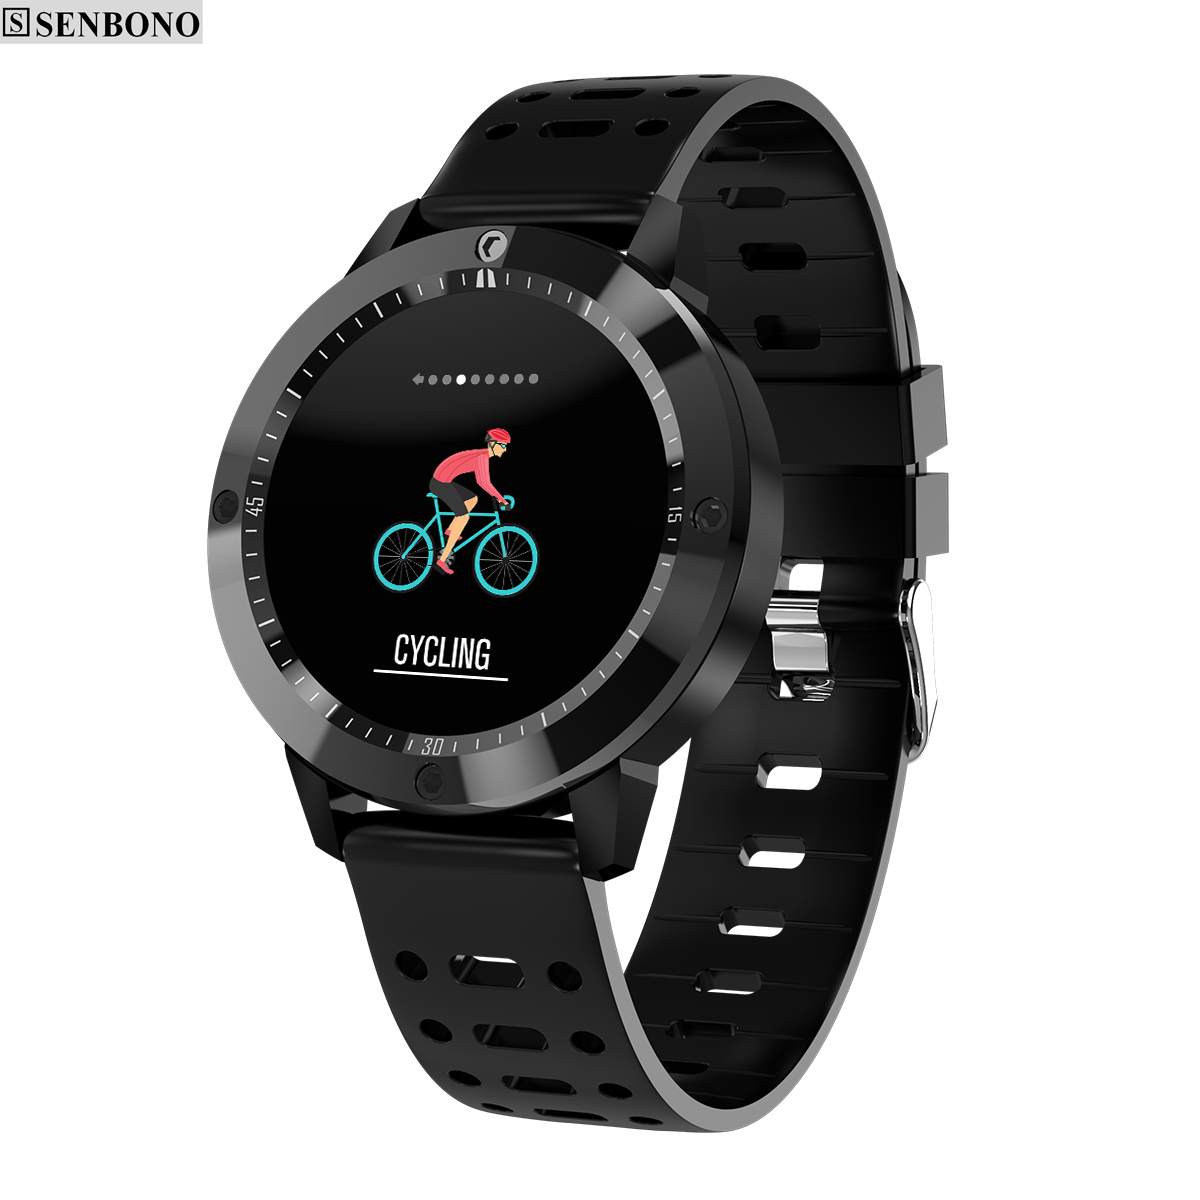 SENBONO CF58 Smart watch IP67 waterproof Tempered glass Activity Fitness tracker Heart rate monitor Sports Men women smartwatch-in Smart Watches from Consumer Electronics on AliExpress - 11.11_Double 11_Singles' Day